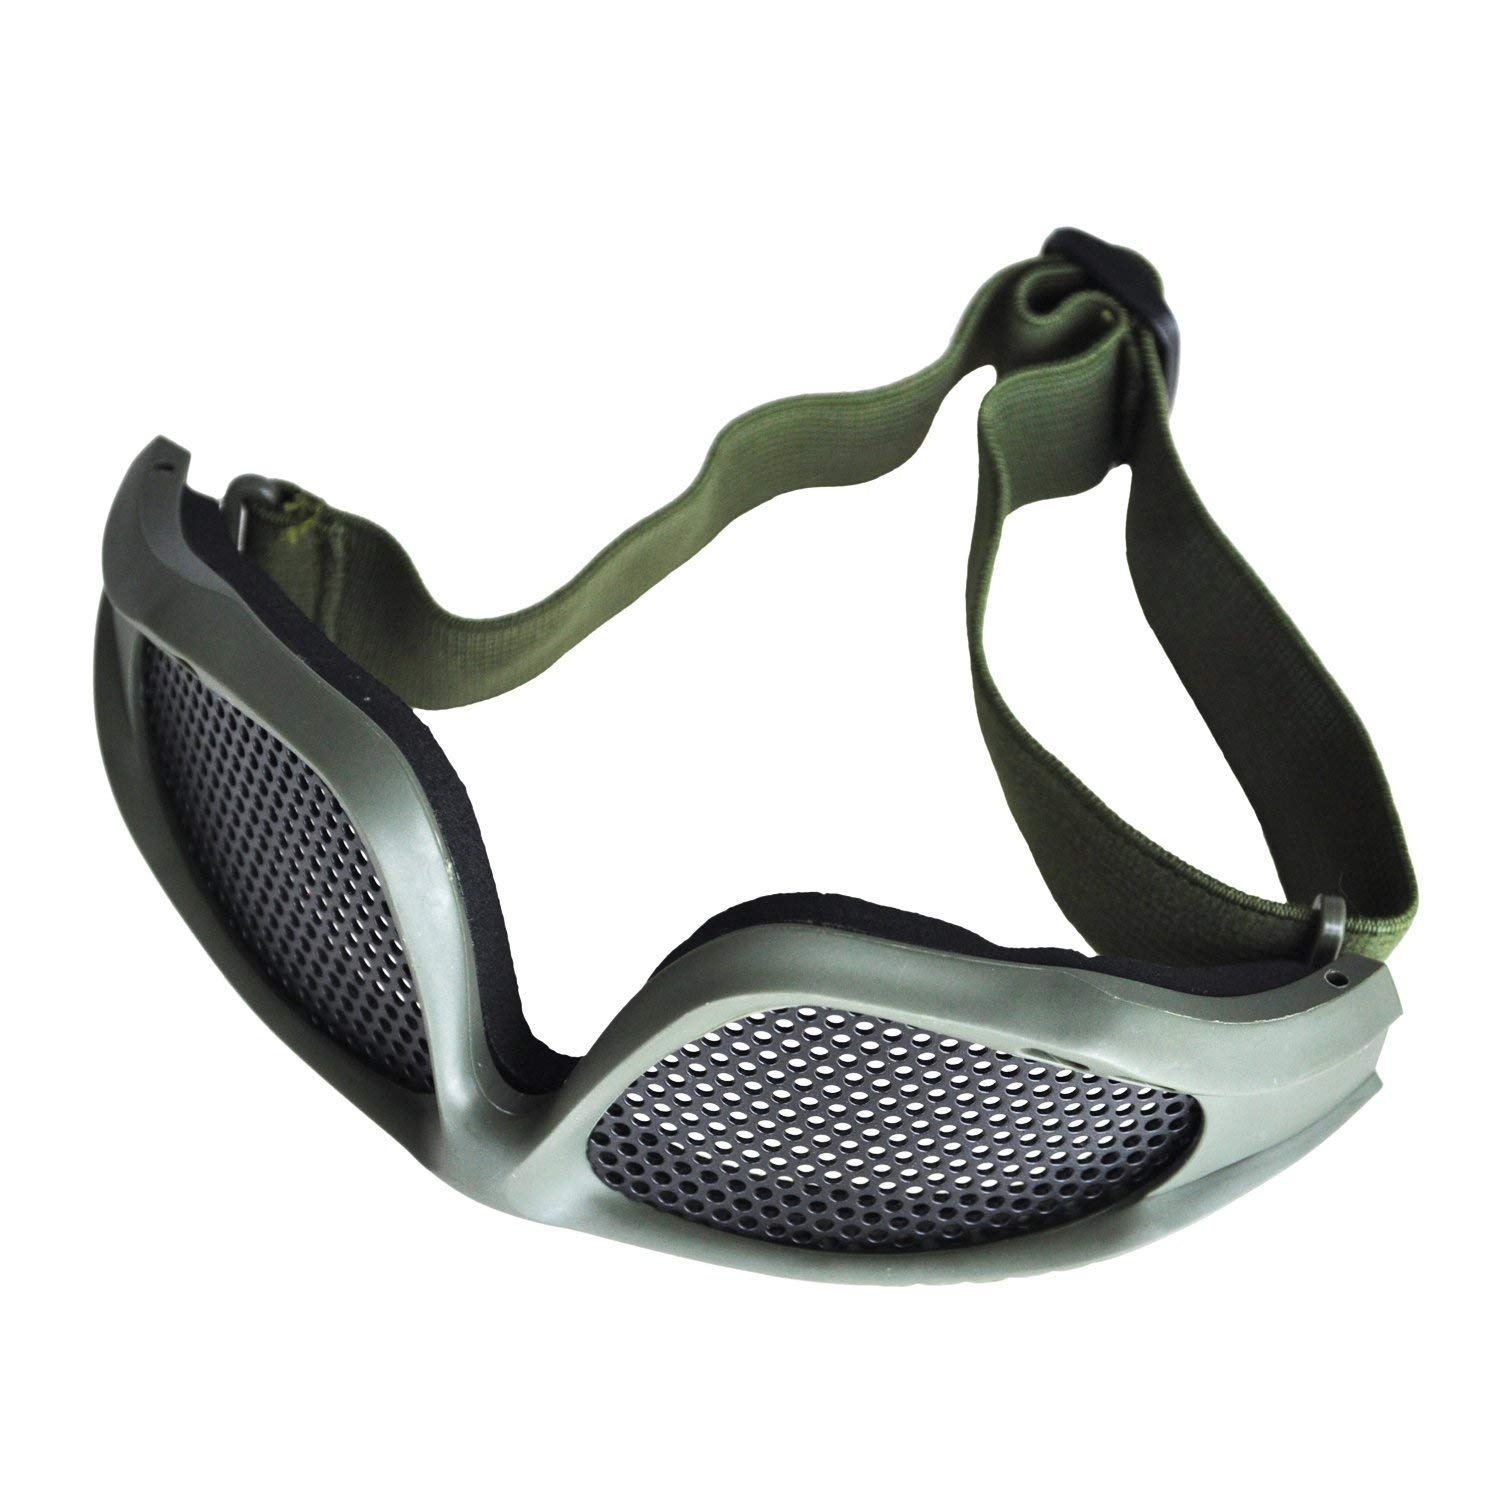 BUYEONLINE Shooting Tactical Airsoft Hunting Sand Metal Mesh Goggles Glasses Army Green